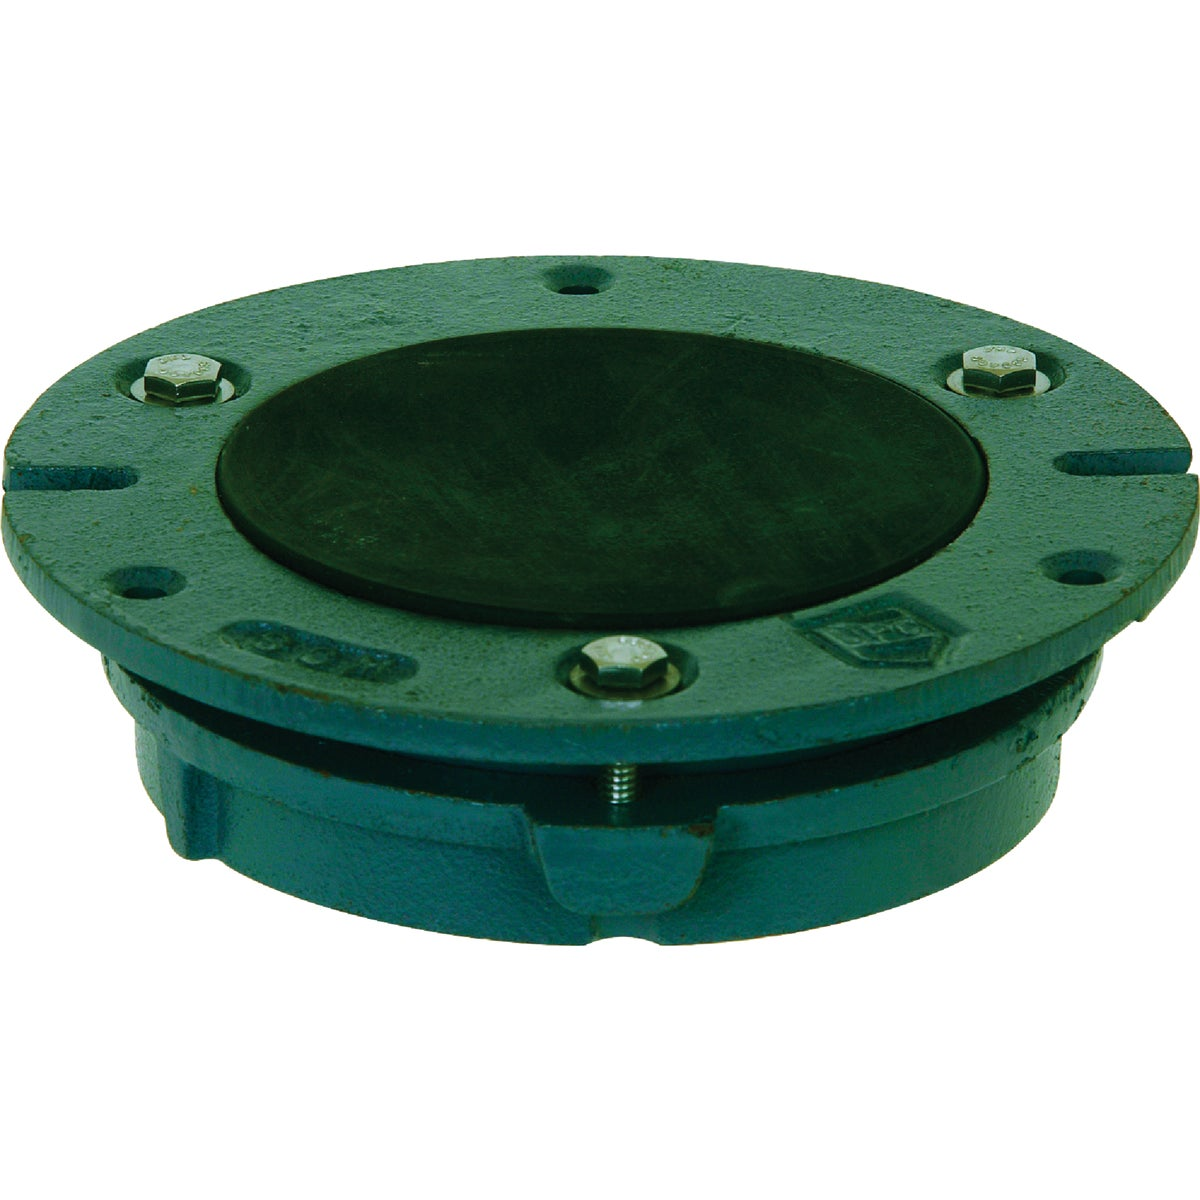 "4"" CAST IRN CLOST FLANGE - 890-I42 by Sioux Chief Mfg"